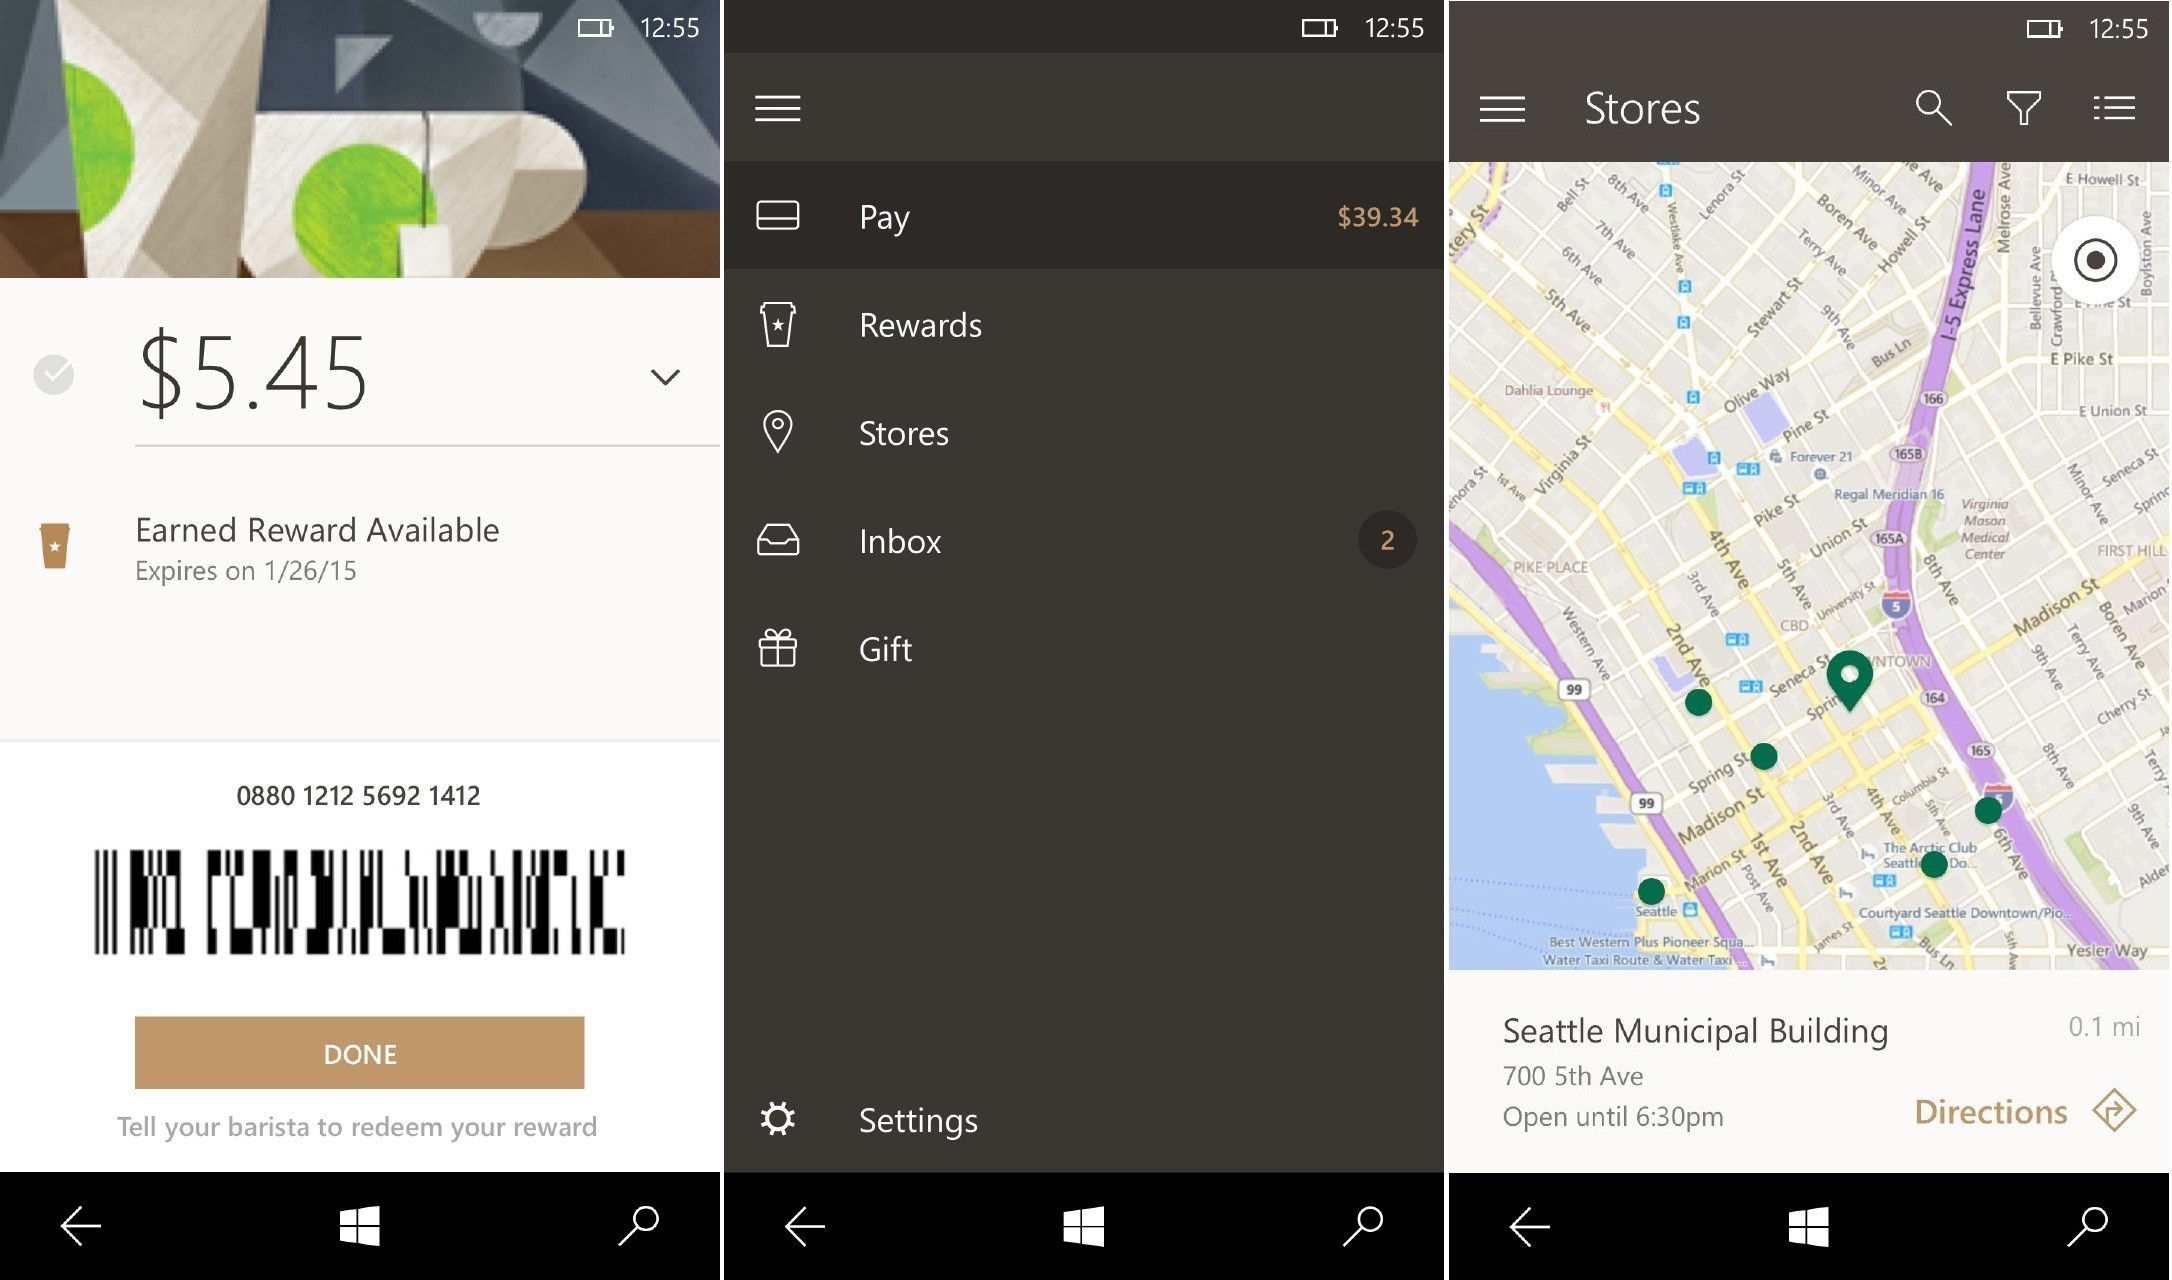 Official starbucks app now available for windows 10 mobile for Windows official site